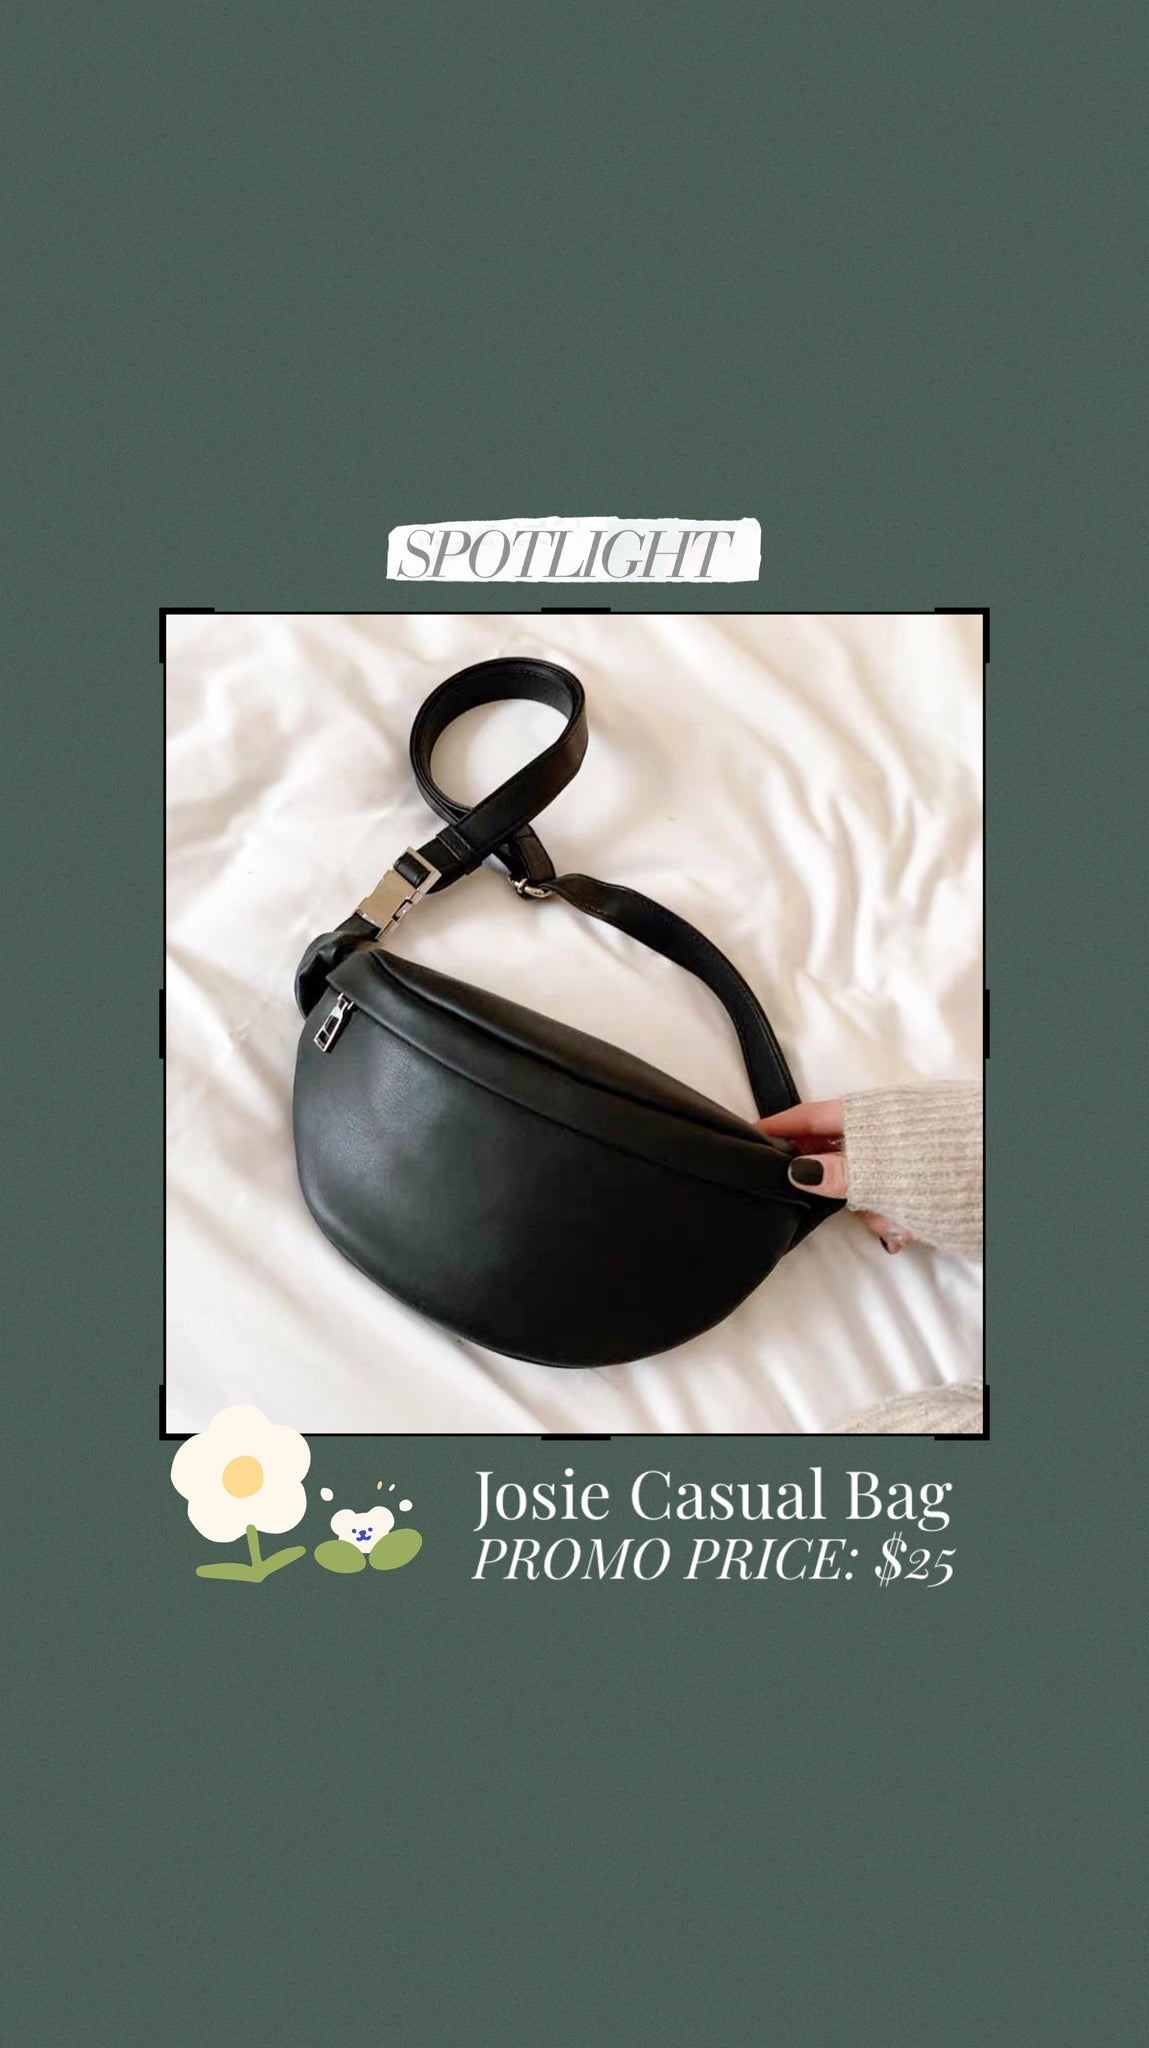 Josie Casual Bag